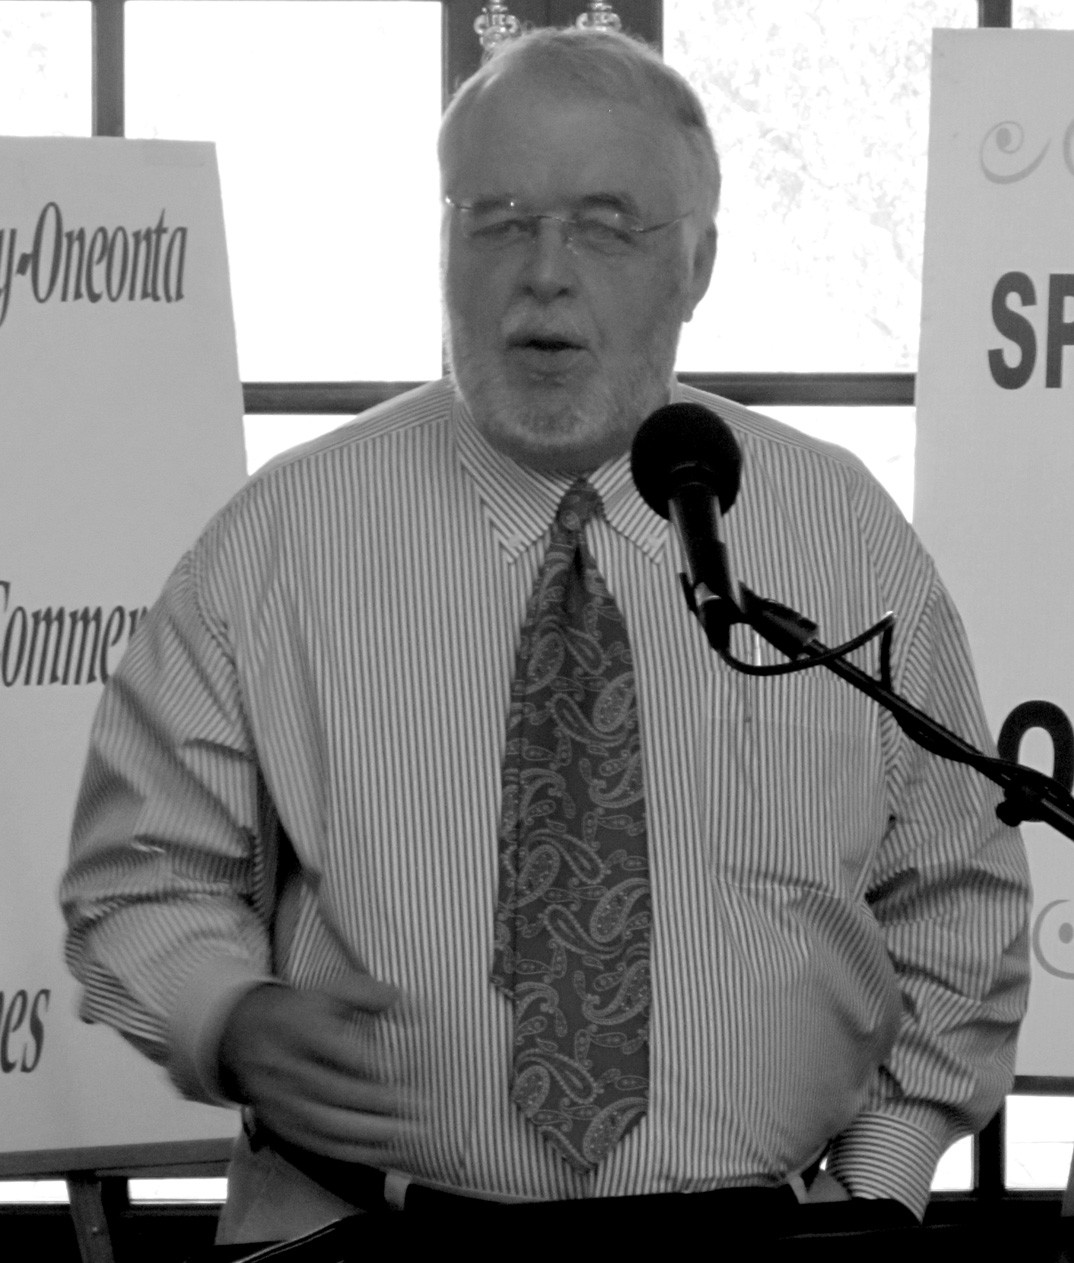 """Larry Lee was the chamber of commerce breakfast speaker for July. His theme was """"education precedes prosperity,"""" the proposition that no community achieves outstanding economic success with only average or below-average schools. His strong recommendation to Blount County: that the chamber sponsor a 'teacher for a day' program in which elected officials, community leaders, business people, and ordinary citizens spend a full day working as teachers' aides to become intimately familiar with needs and conditions in local schools. Lee led the study published under the title """"Lessons Learned from Rural Schools,"""" a look at 10 high-performing, high-poverty rural schools. In this column he offers advice to former Gov. Riley on his recent educational agenda."""